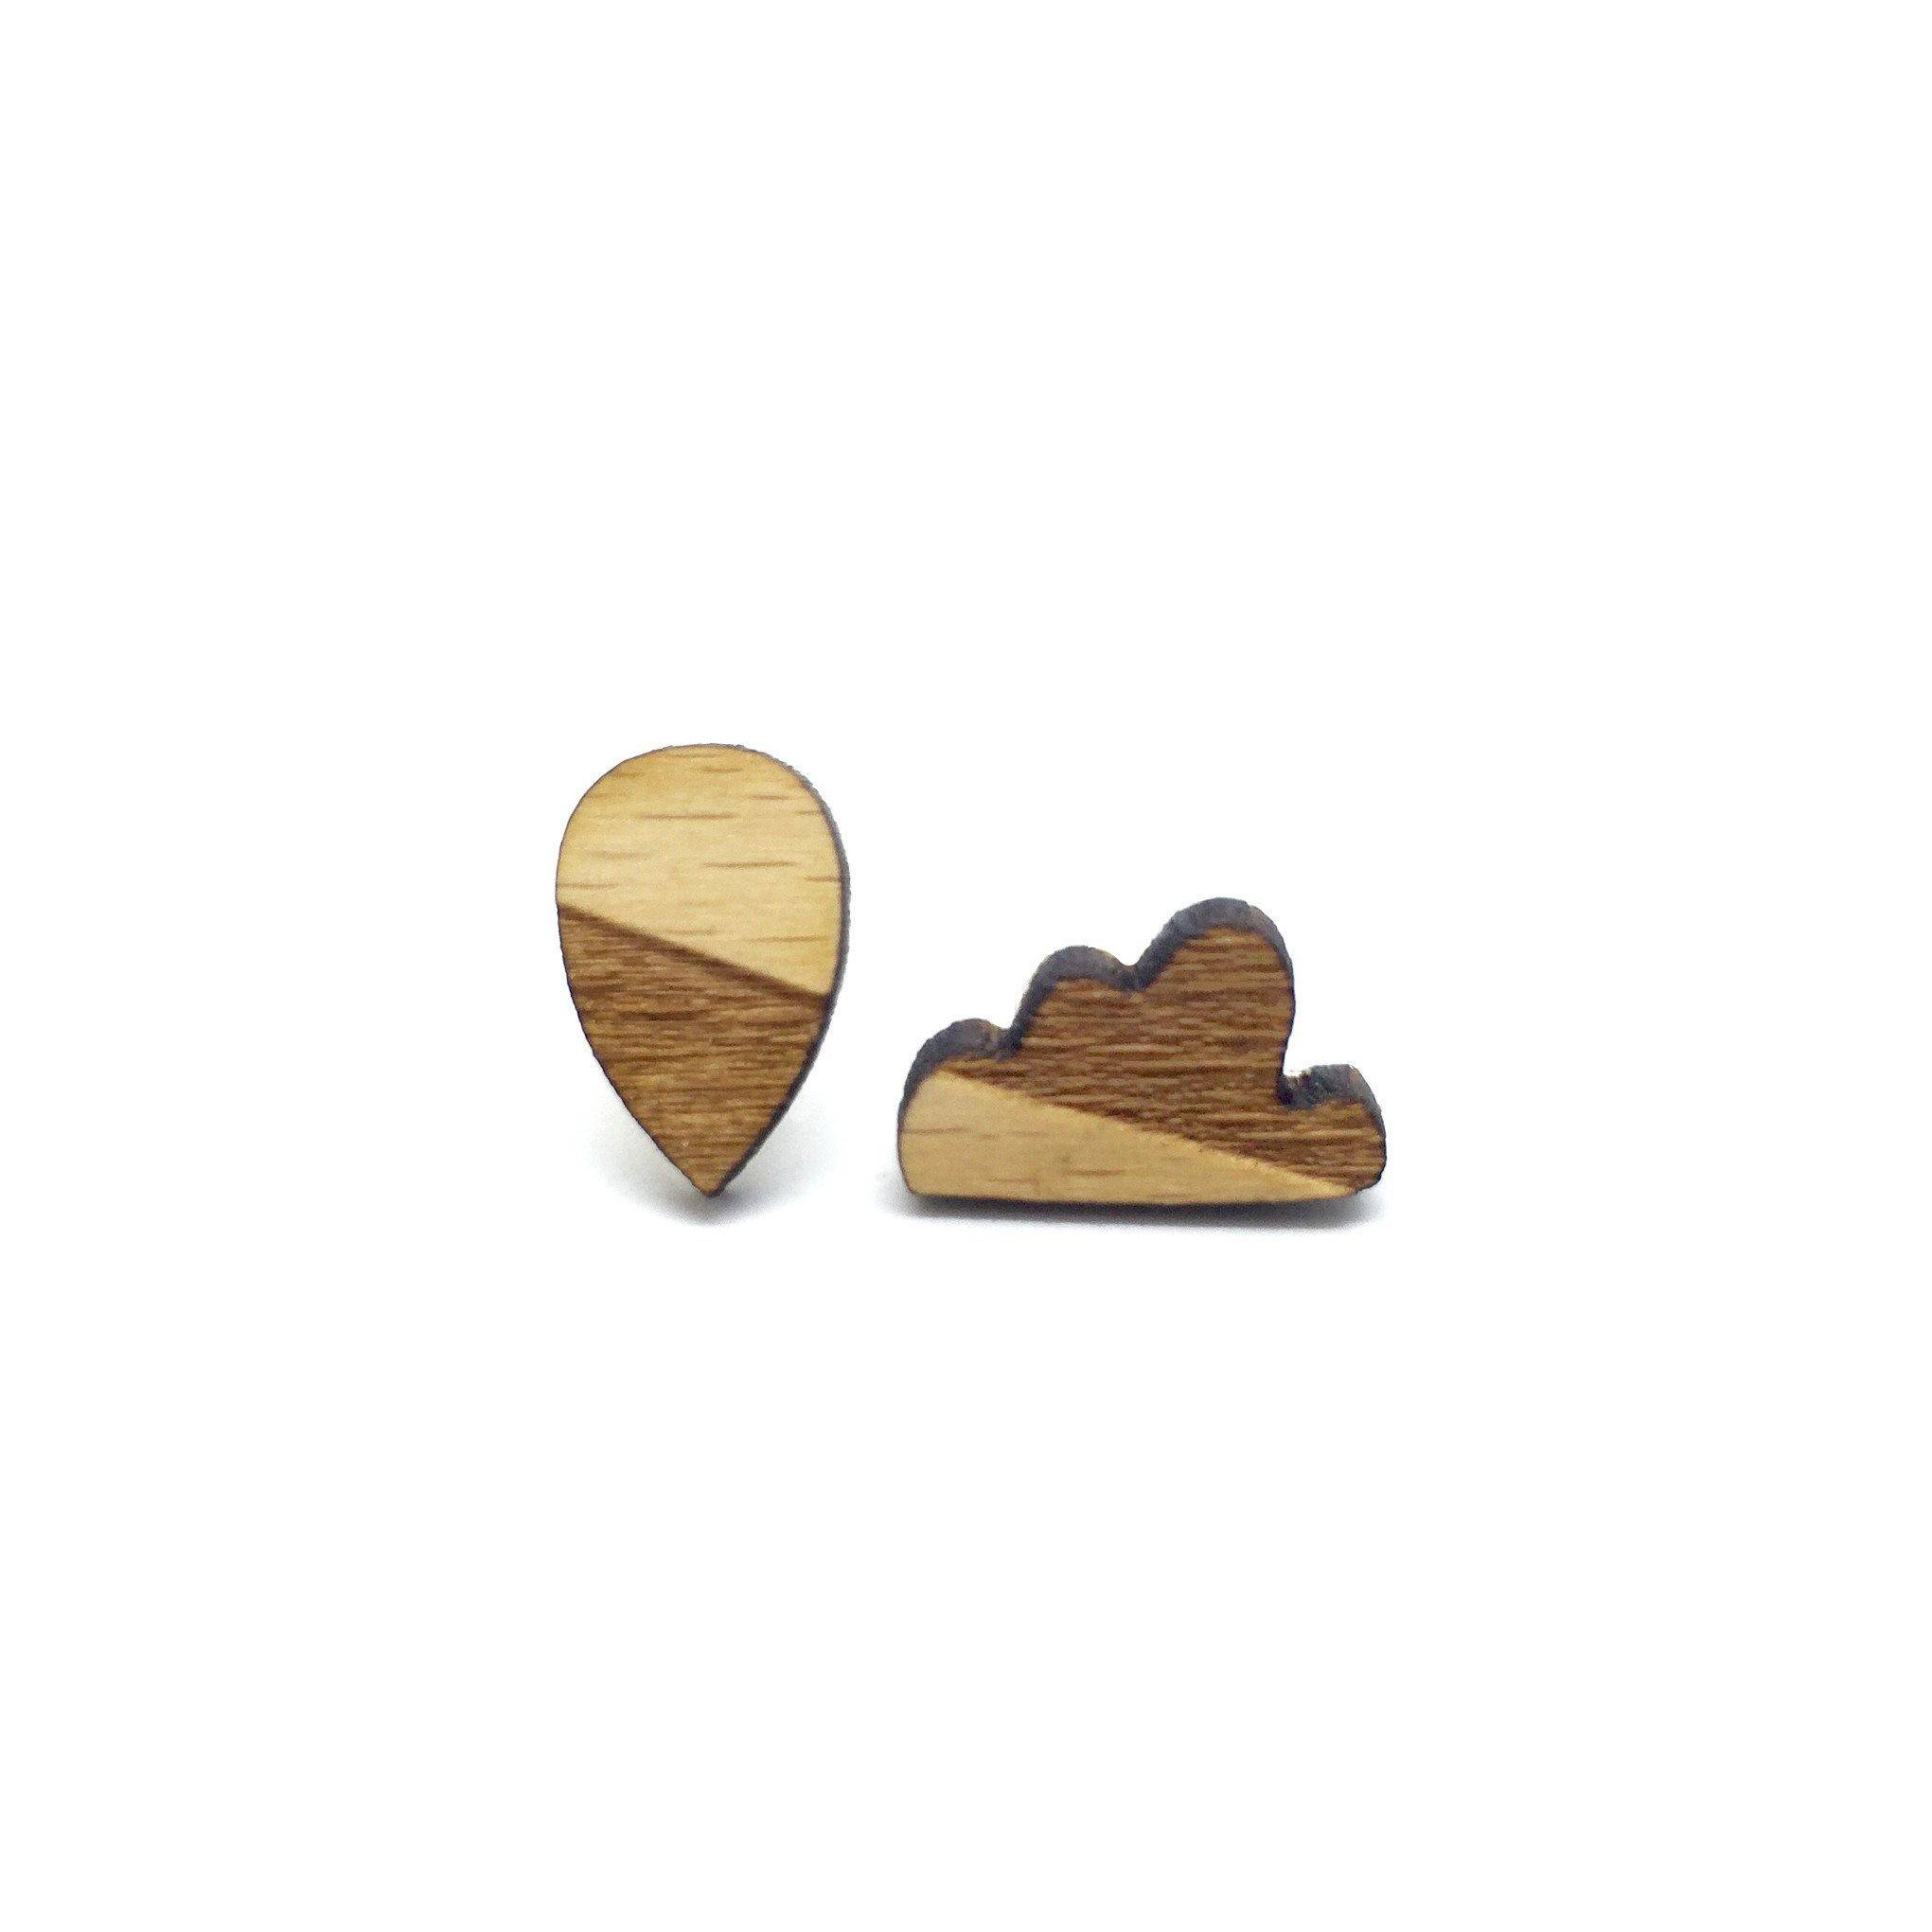 A Rainy Day Laser Cut Wood Earrings - Earrings - Paperdaise Accessories - Naiise